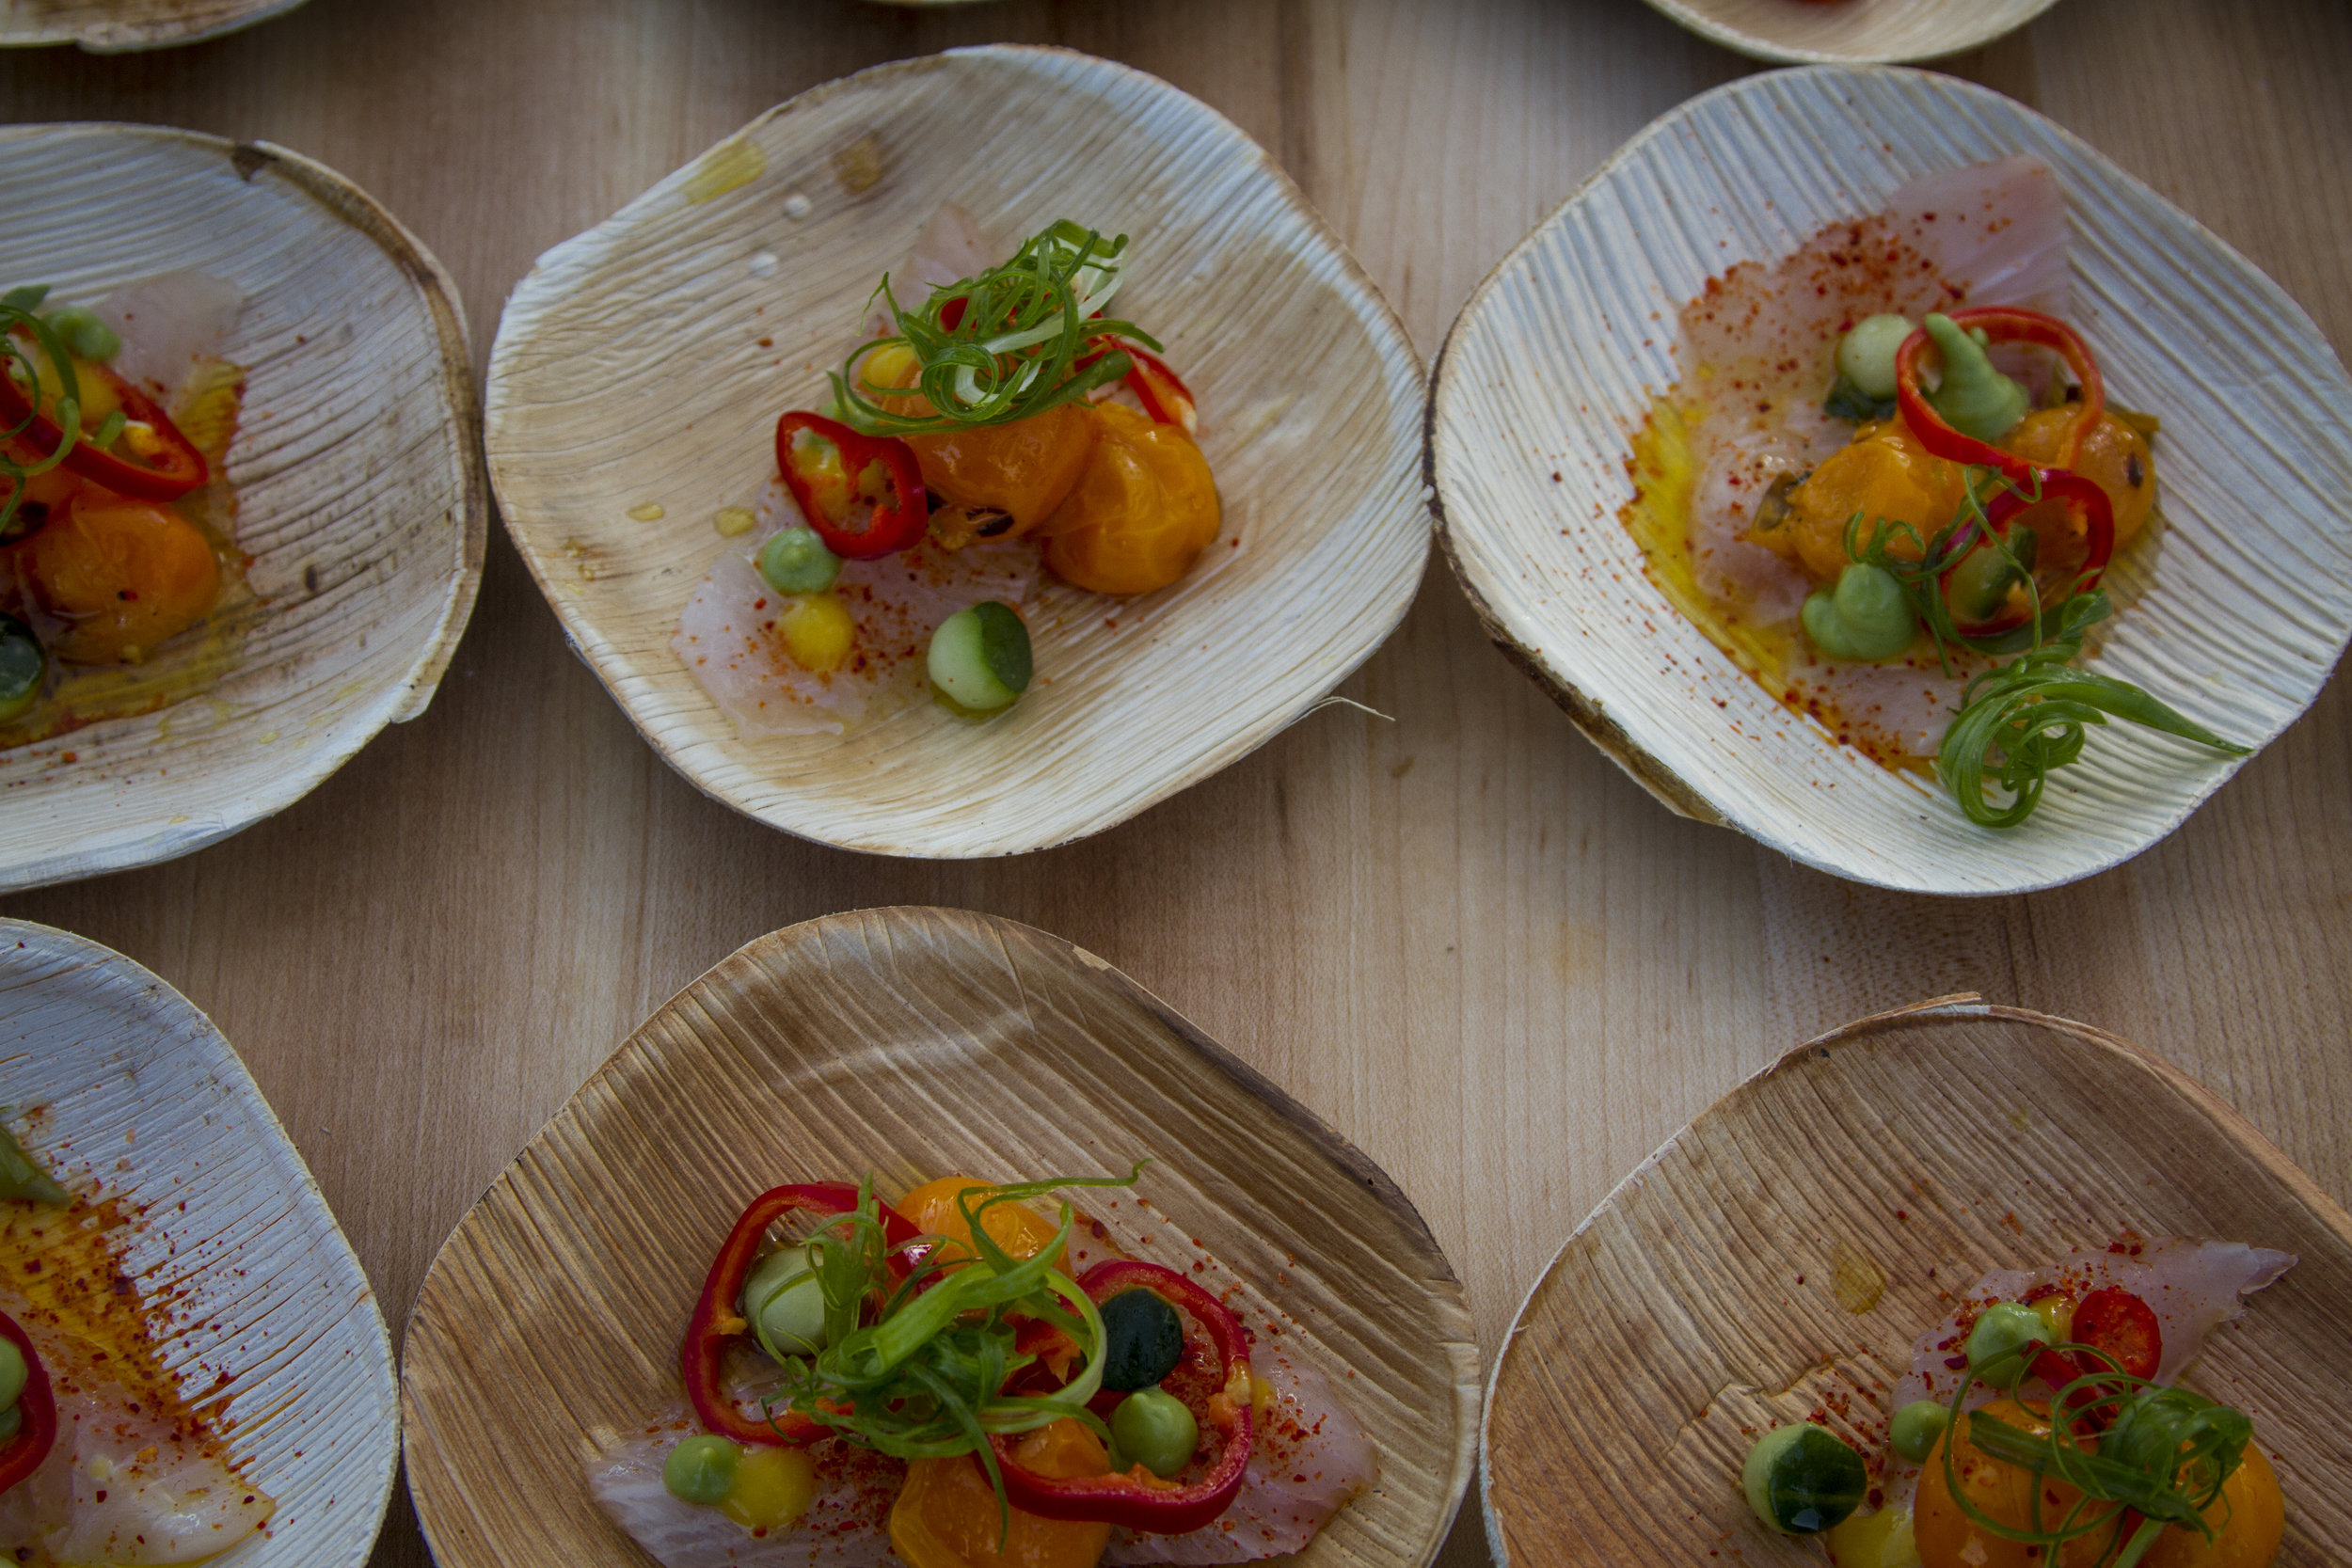 A plate of baja kanpachi from the Fairmont MIramar Hotel. At Off the Hook Seafood Festival. Oct. 6, 2018. By Yasser Marte.